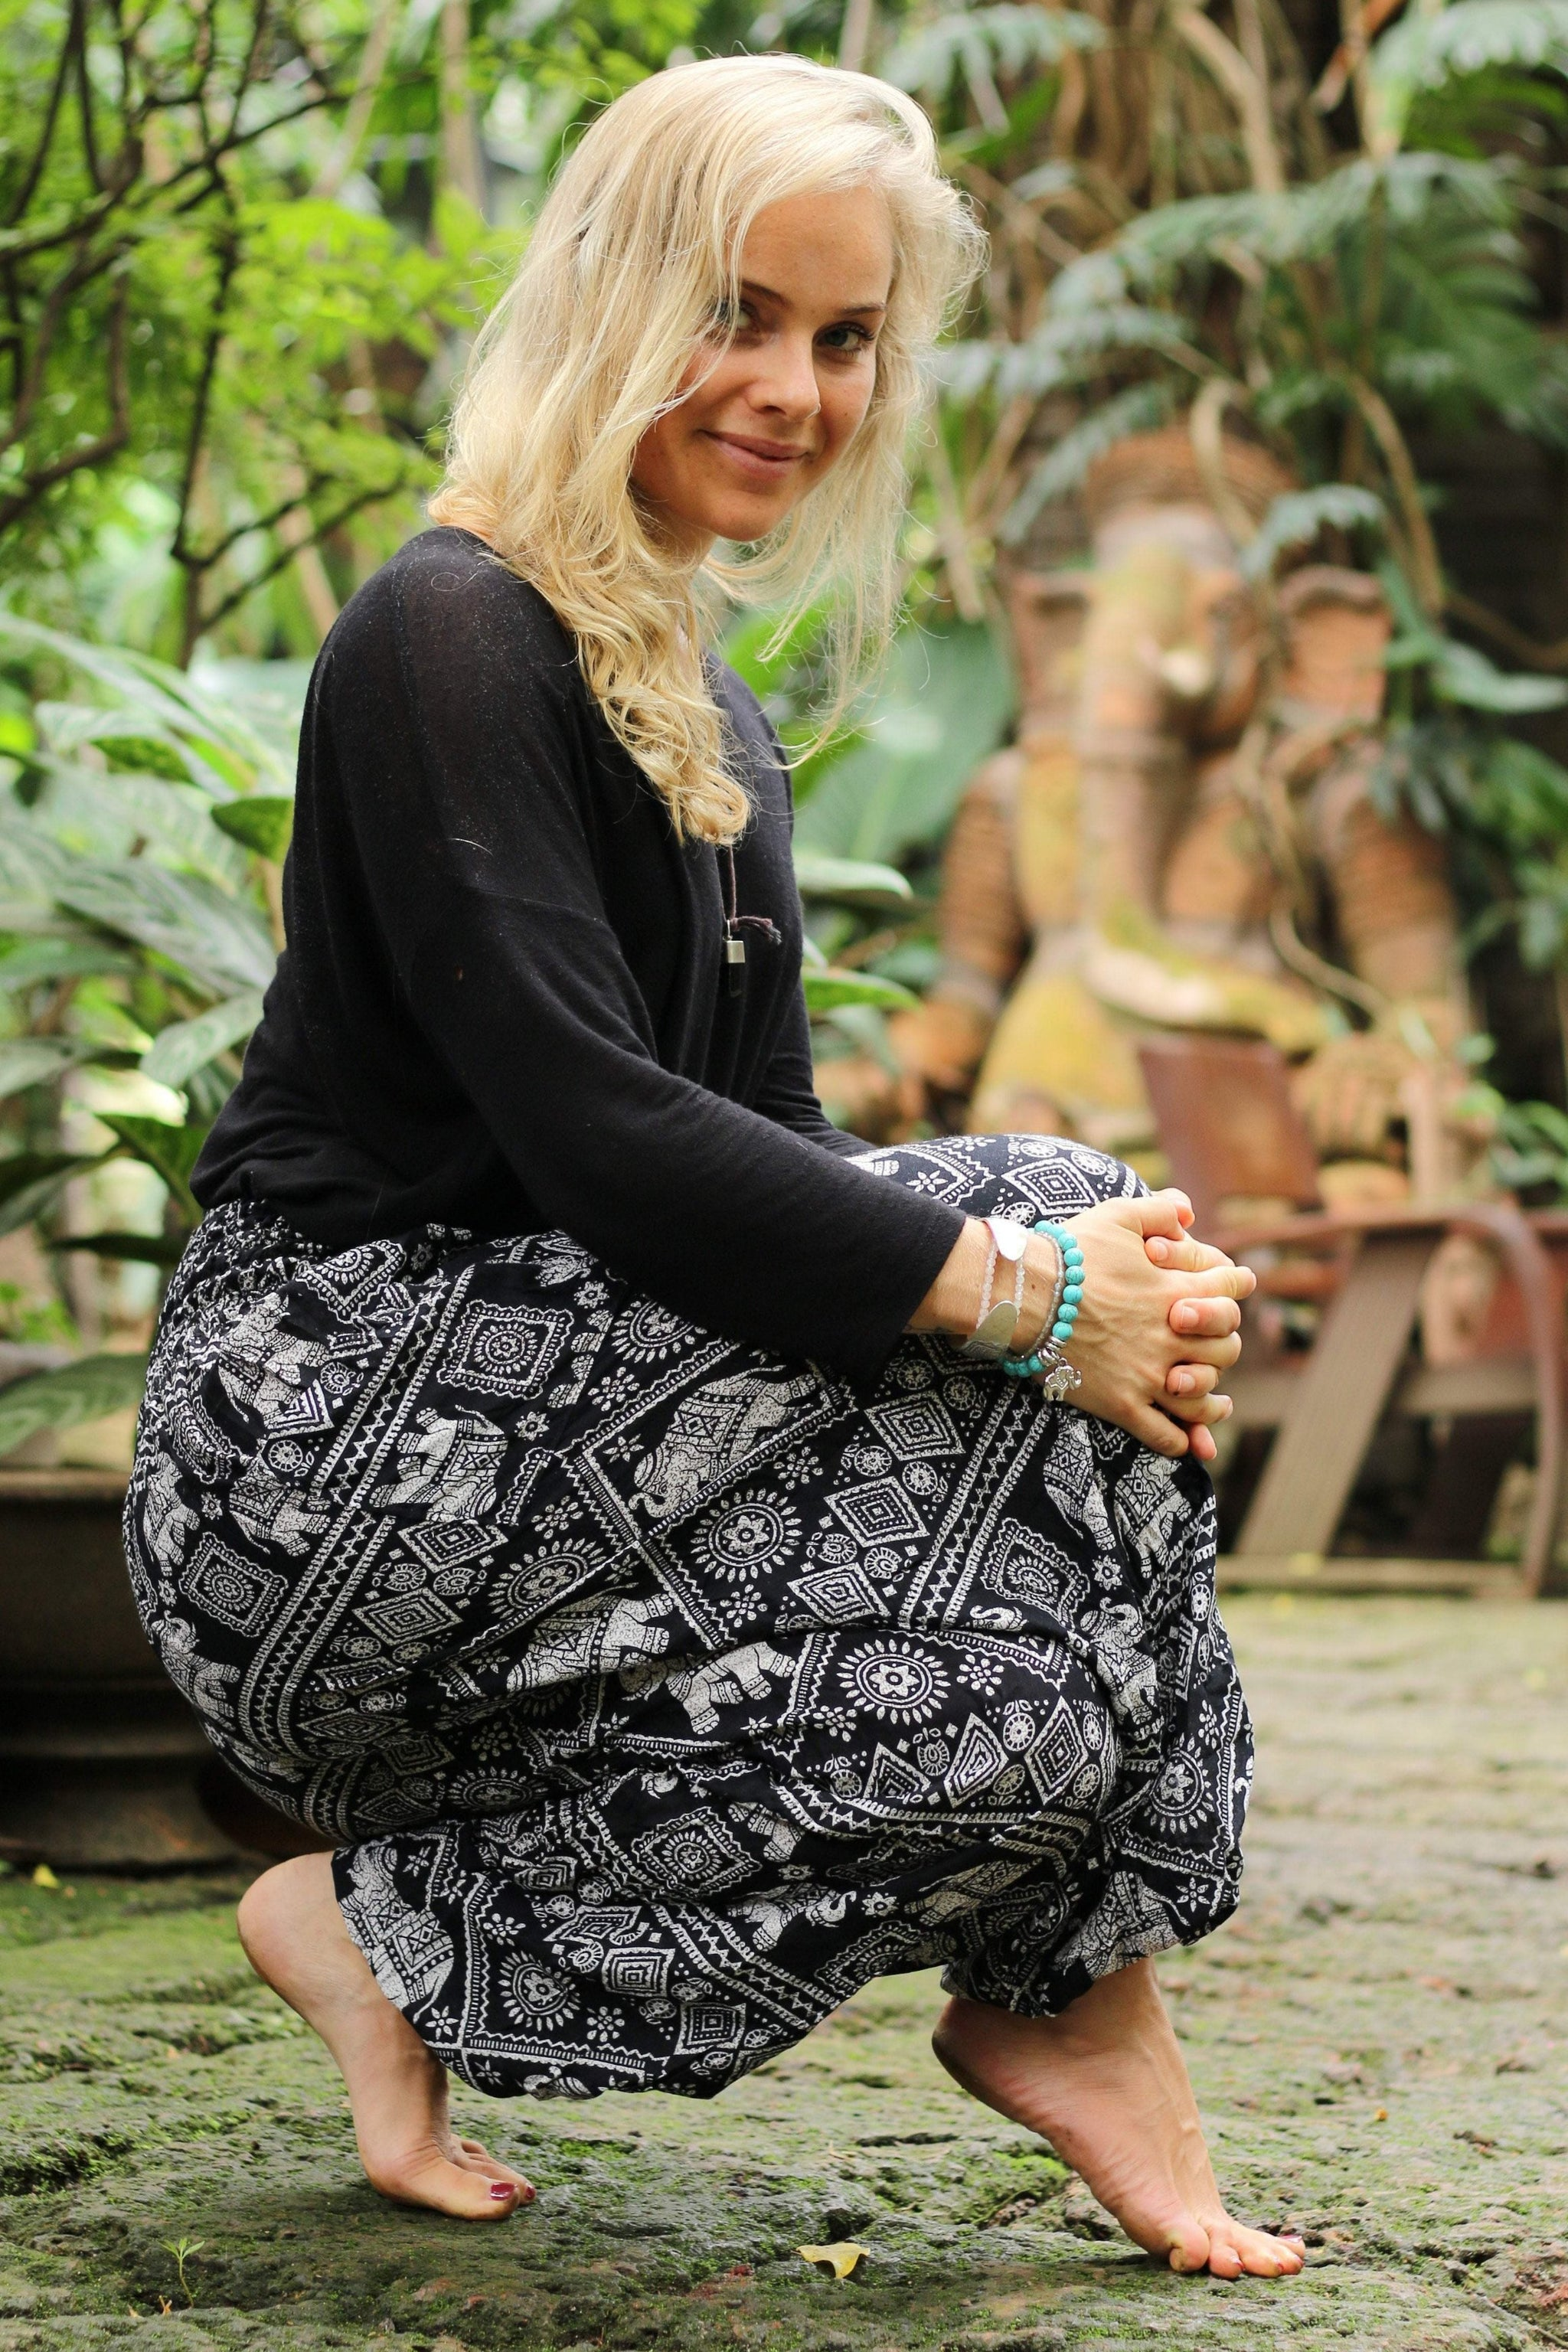 afd05d635154a One Tribe Apparel | Authentic Womens Bohemian Fashion